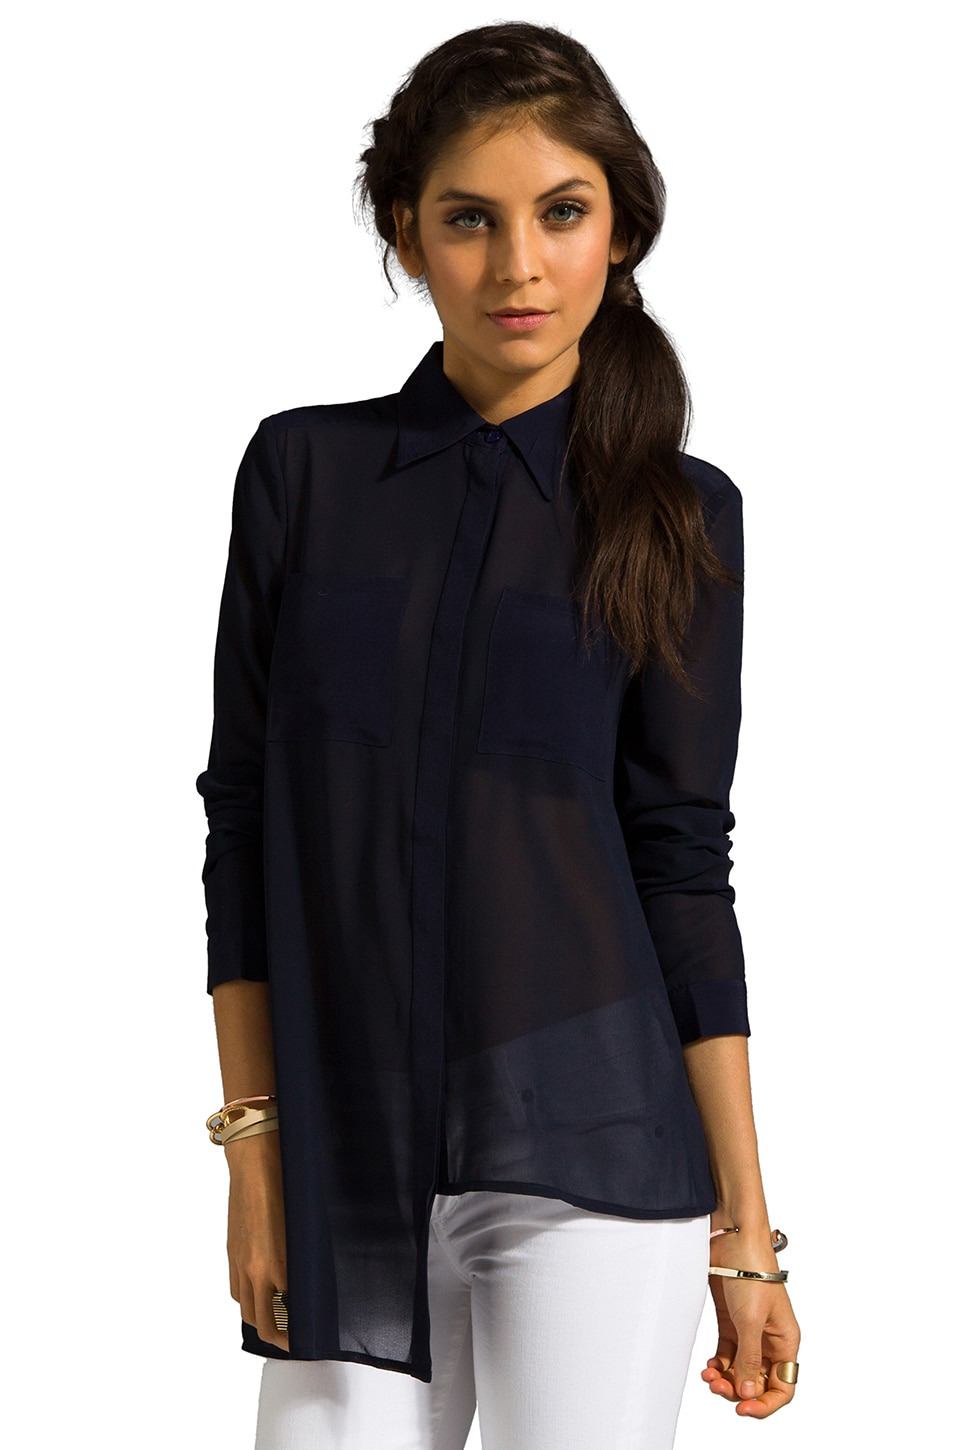 Finders Keepers Anything Goes Long Sleeve Shirt in Twilight